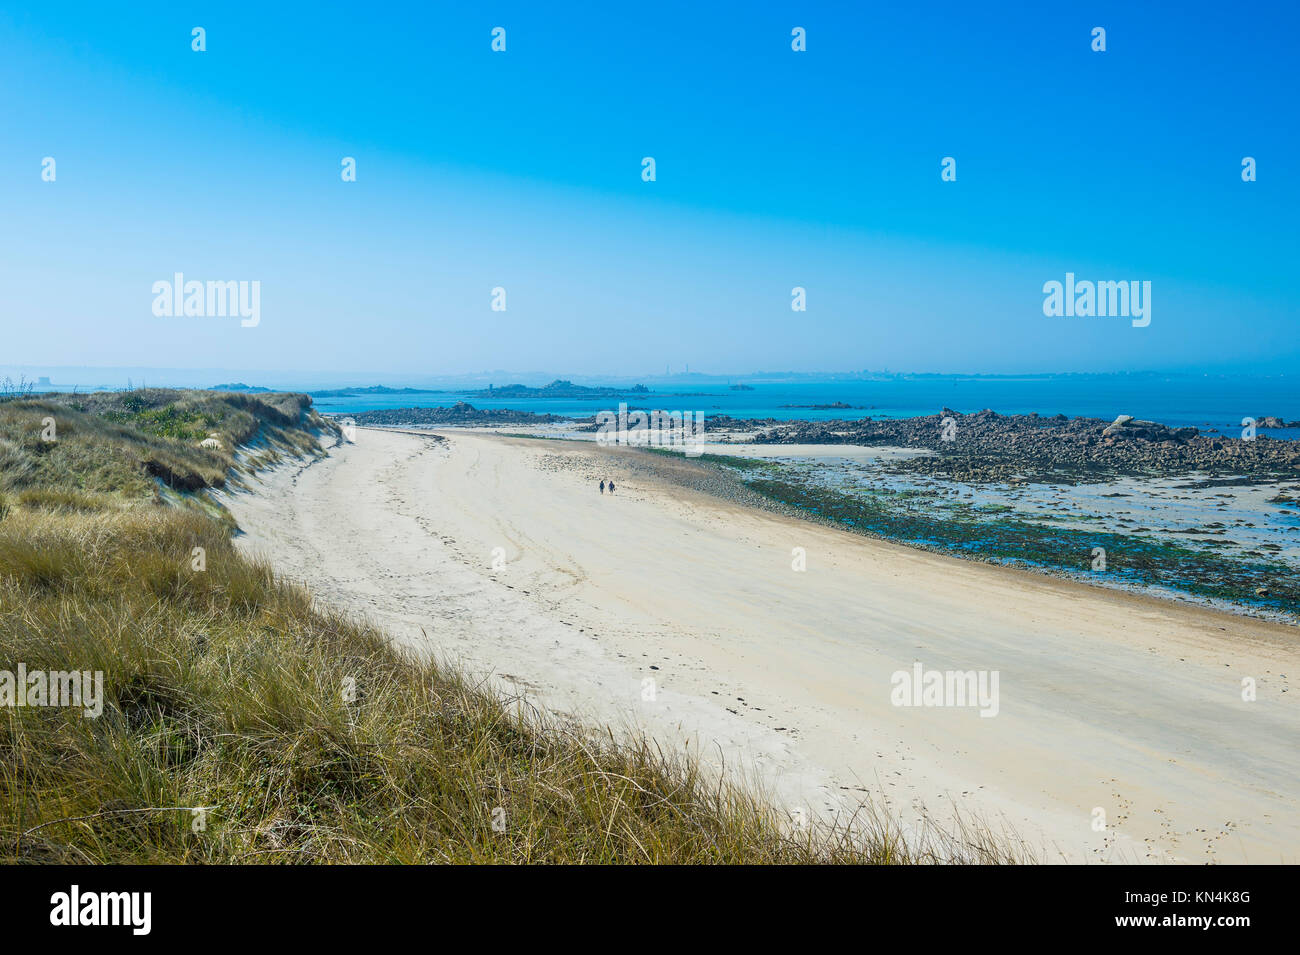 Overlook over a sand beach at the north coast of Herm, Guernsey, Channel Islands, United Kingdom - Stock Image